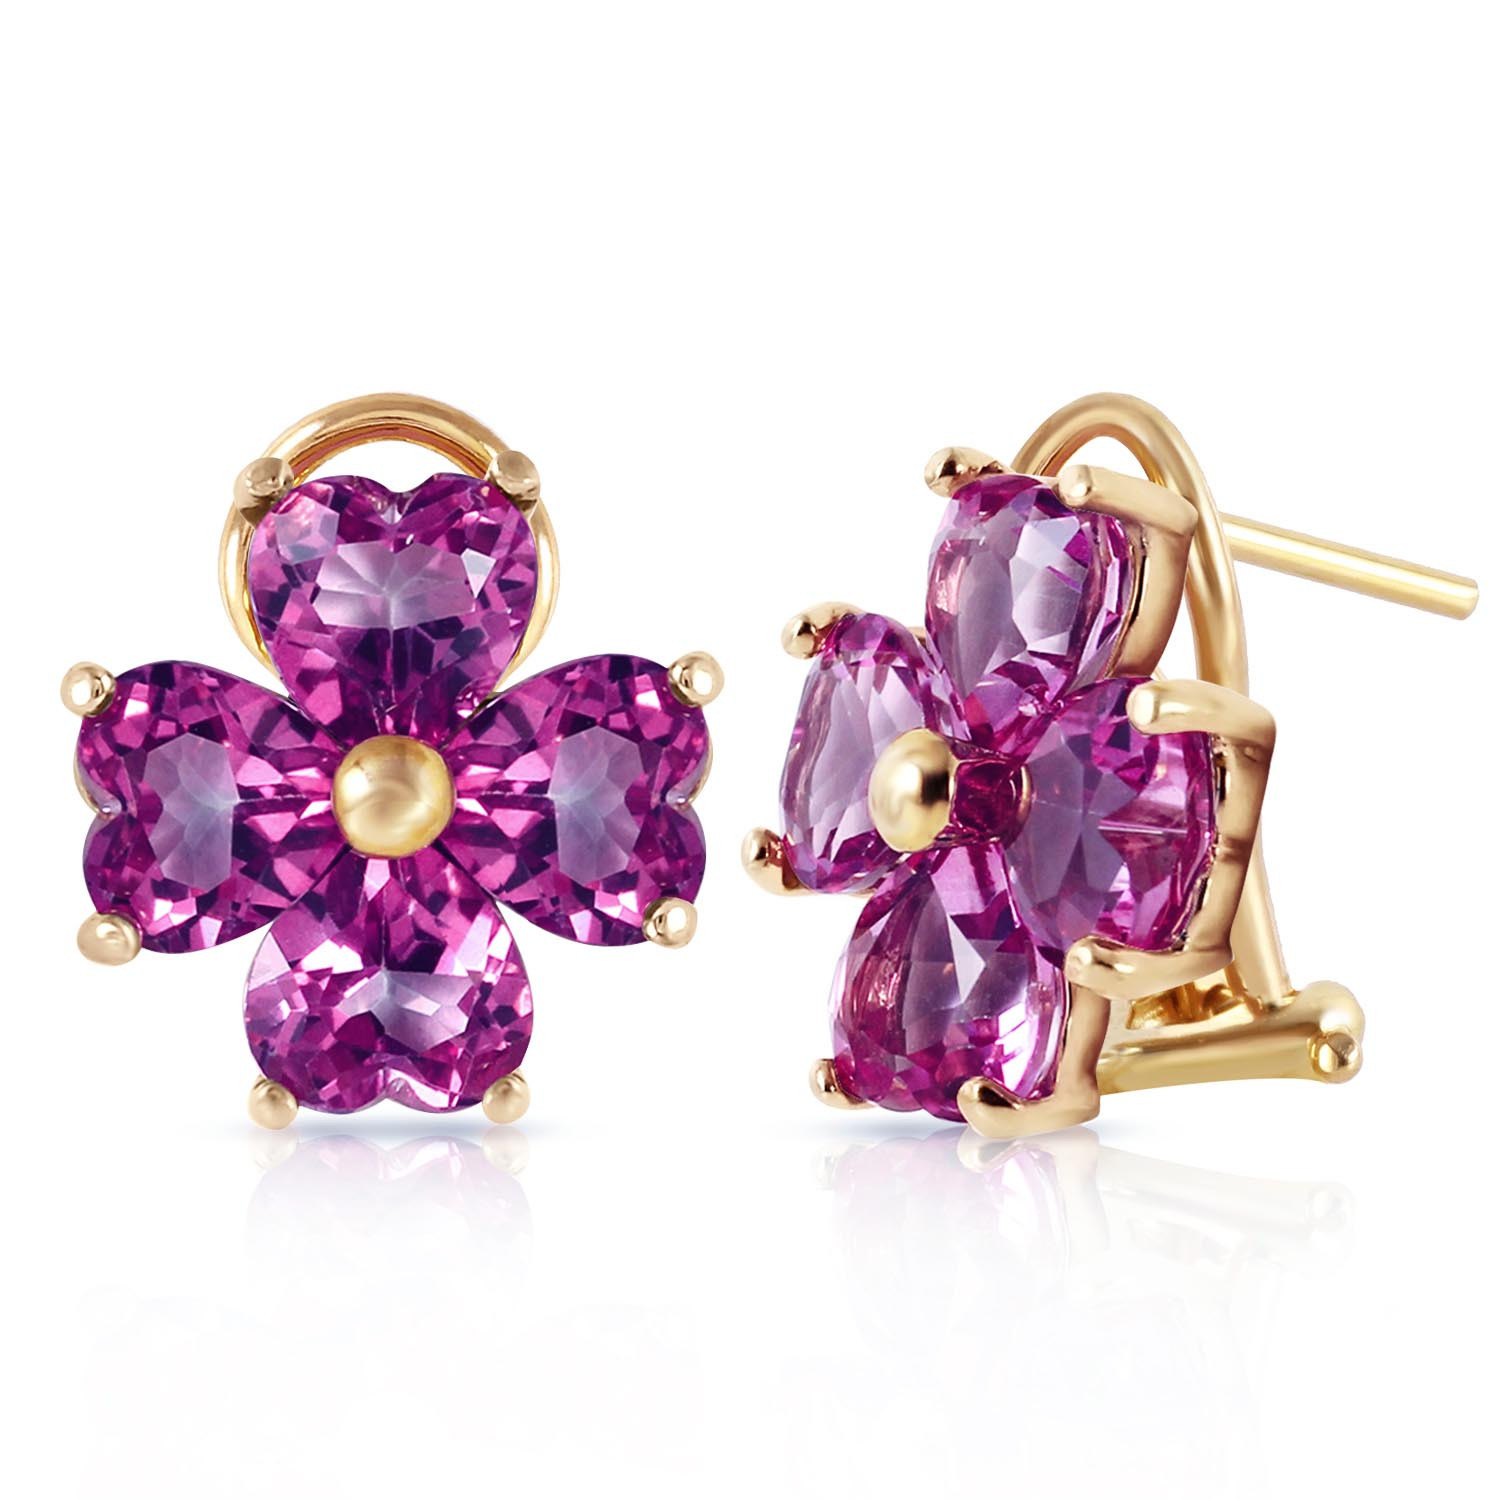 Amethyst Flower Stud Earrings 6.5 ctw in 9ct Gold